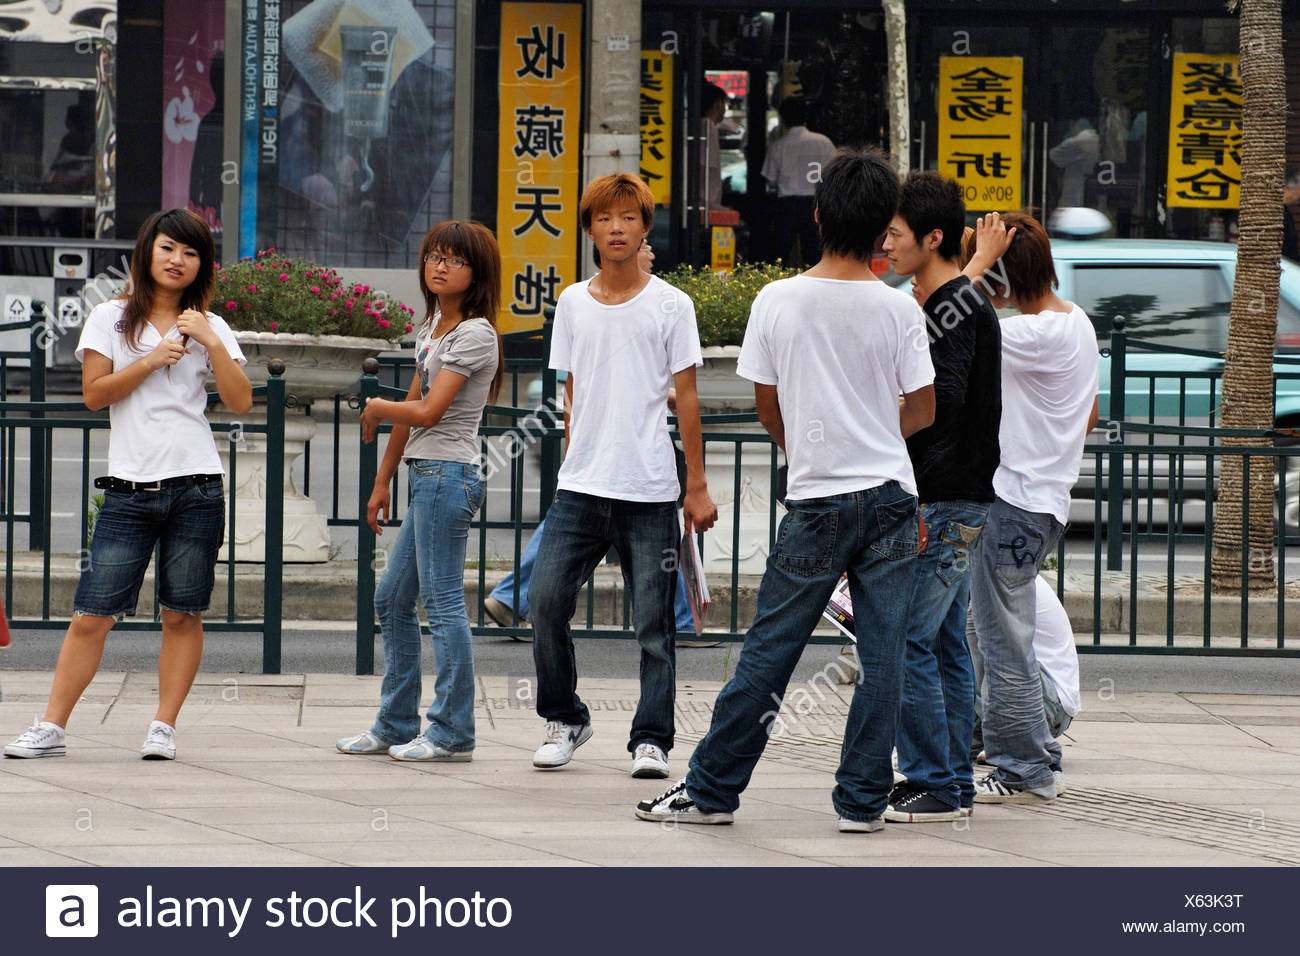 Chinese adolescents, Shanghai, China, Asia - Stock Image